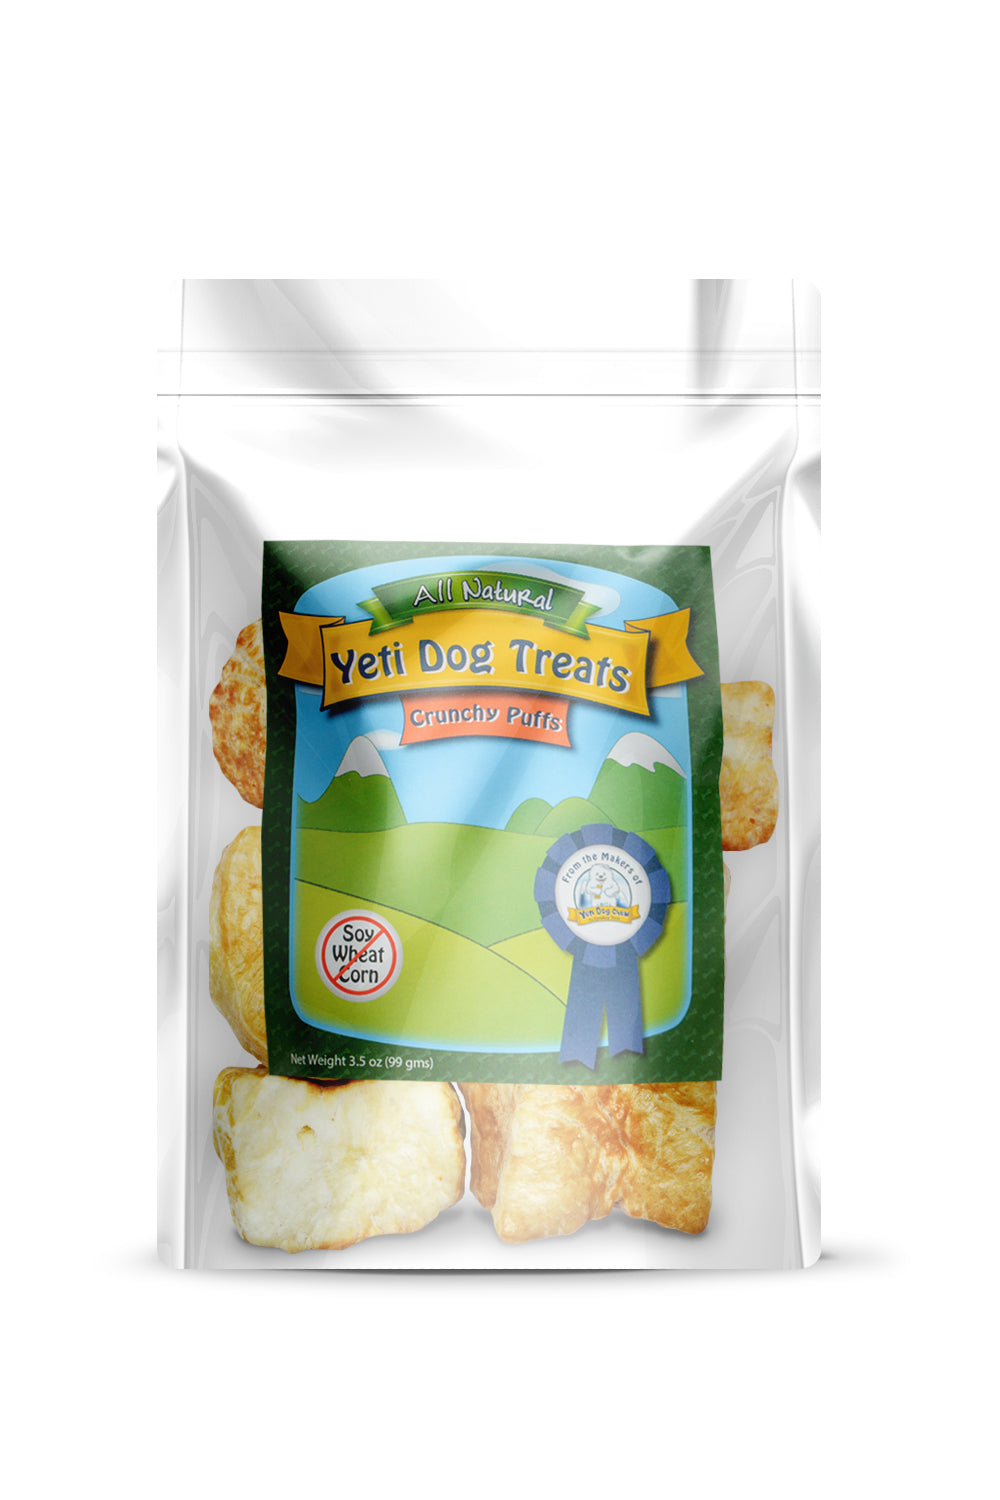 Yeti Dog Treat Crunchy Cheese Puffs (6-8 pieces)